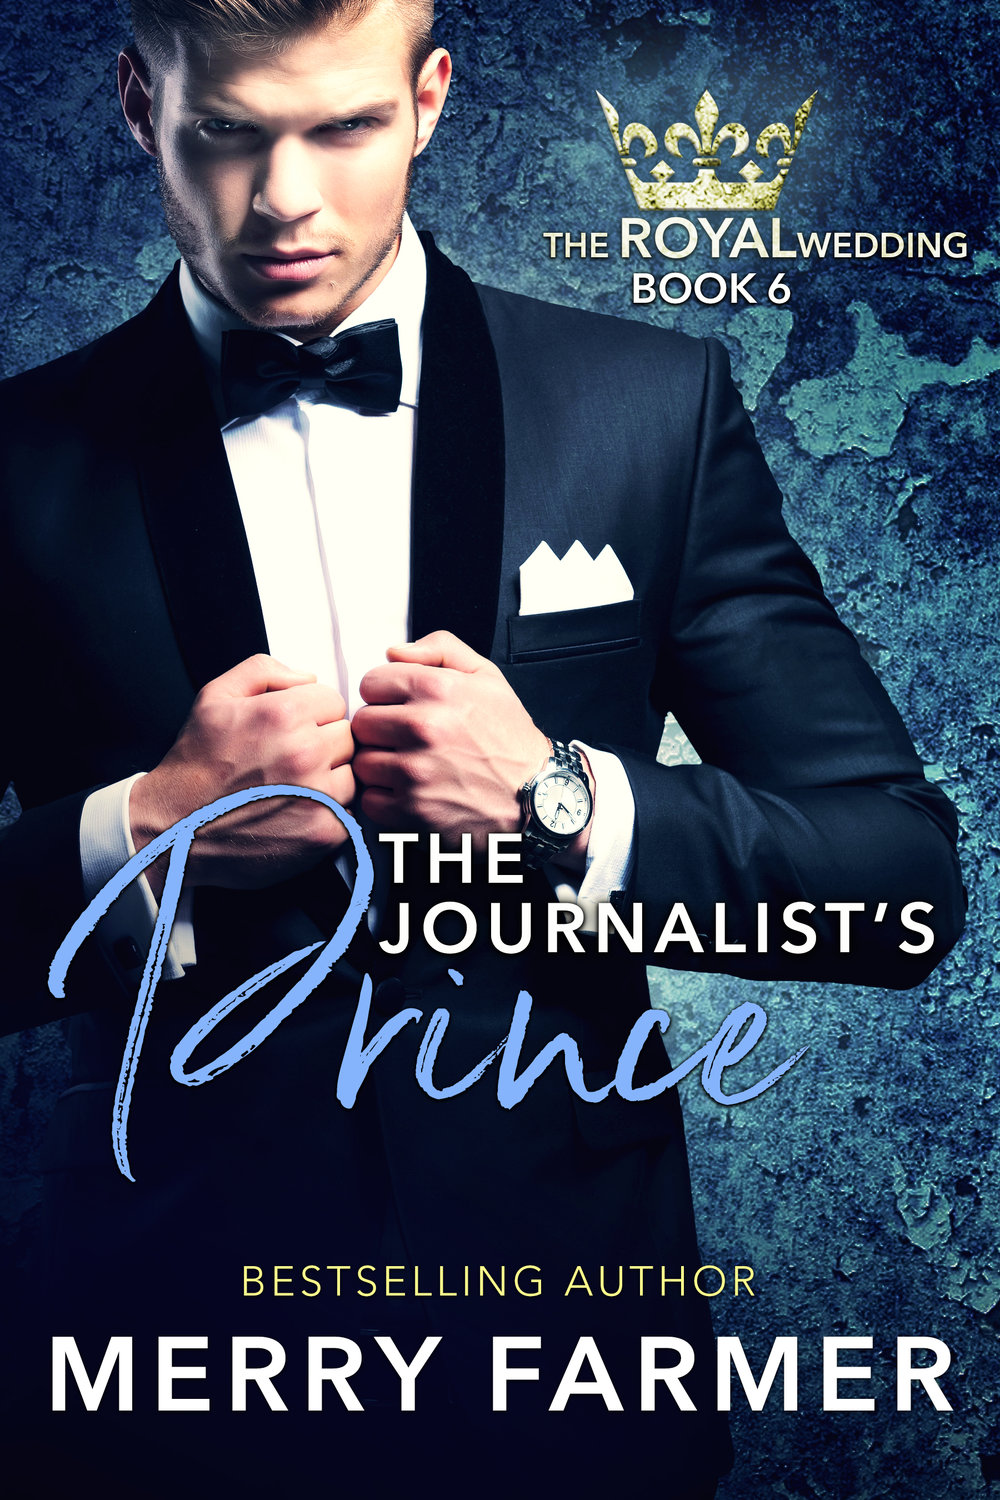 "The Journalist's Prince - by Merry Farmer (Book Six) - A Prince, a Journalist, and eighteen hours to save the royal wedding….As the youngest member of the Aegirian royal family, Prince Johannes Magnusson takes his responsibility to his family seriously. So when his mother's wedding seems doomed at the last minute, he will stop at nothing to set things right. But when a prominent member of the royal family goes missing under suspicious circumstances, the search for answers uncovers more than anyone bargained for.Journalist Tracy Minhall has embraced the island kingdom of Aegiria as her new home, mostly because of her intimate connection to Prince Johan. So when he needs her help to solve a royal mystery, she jumps at the chance to face danger. But not everyone is happy with her risk-taking ways, and the truths she uncovers could tear the royal family apart forever.Will the royal wedding happen at last, or will the truth spell the end for the Aegirian monarchy?PLEASE BE ADVISED: Steam Level – Hot…including one ""open door"" scene."